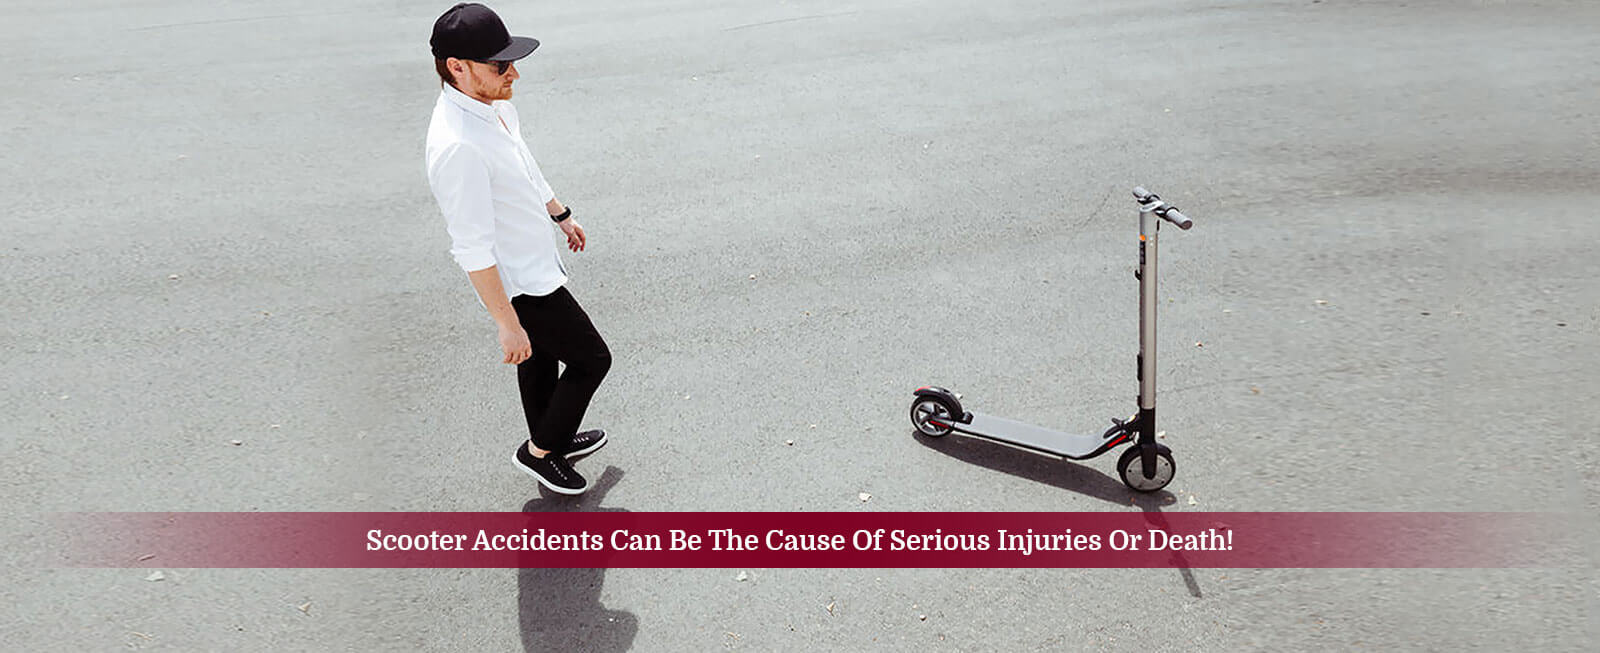 Scooter Accidents can be the cause of serious injuries or death!